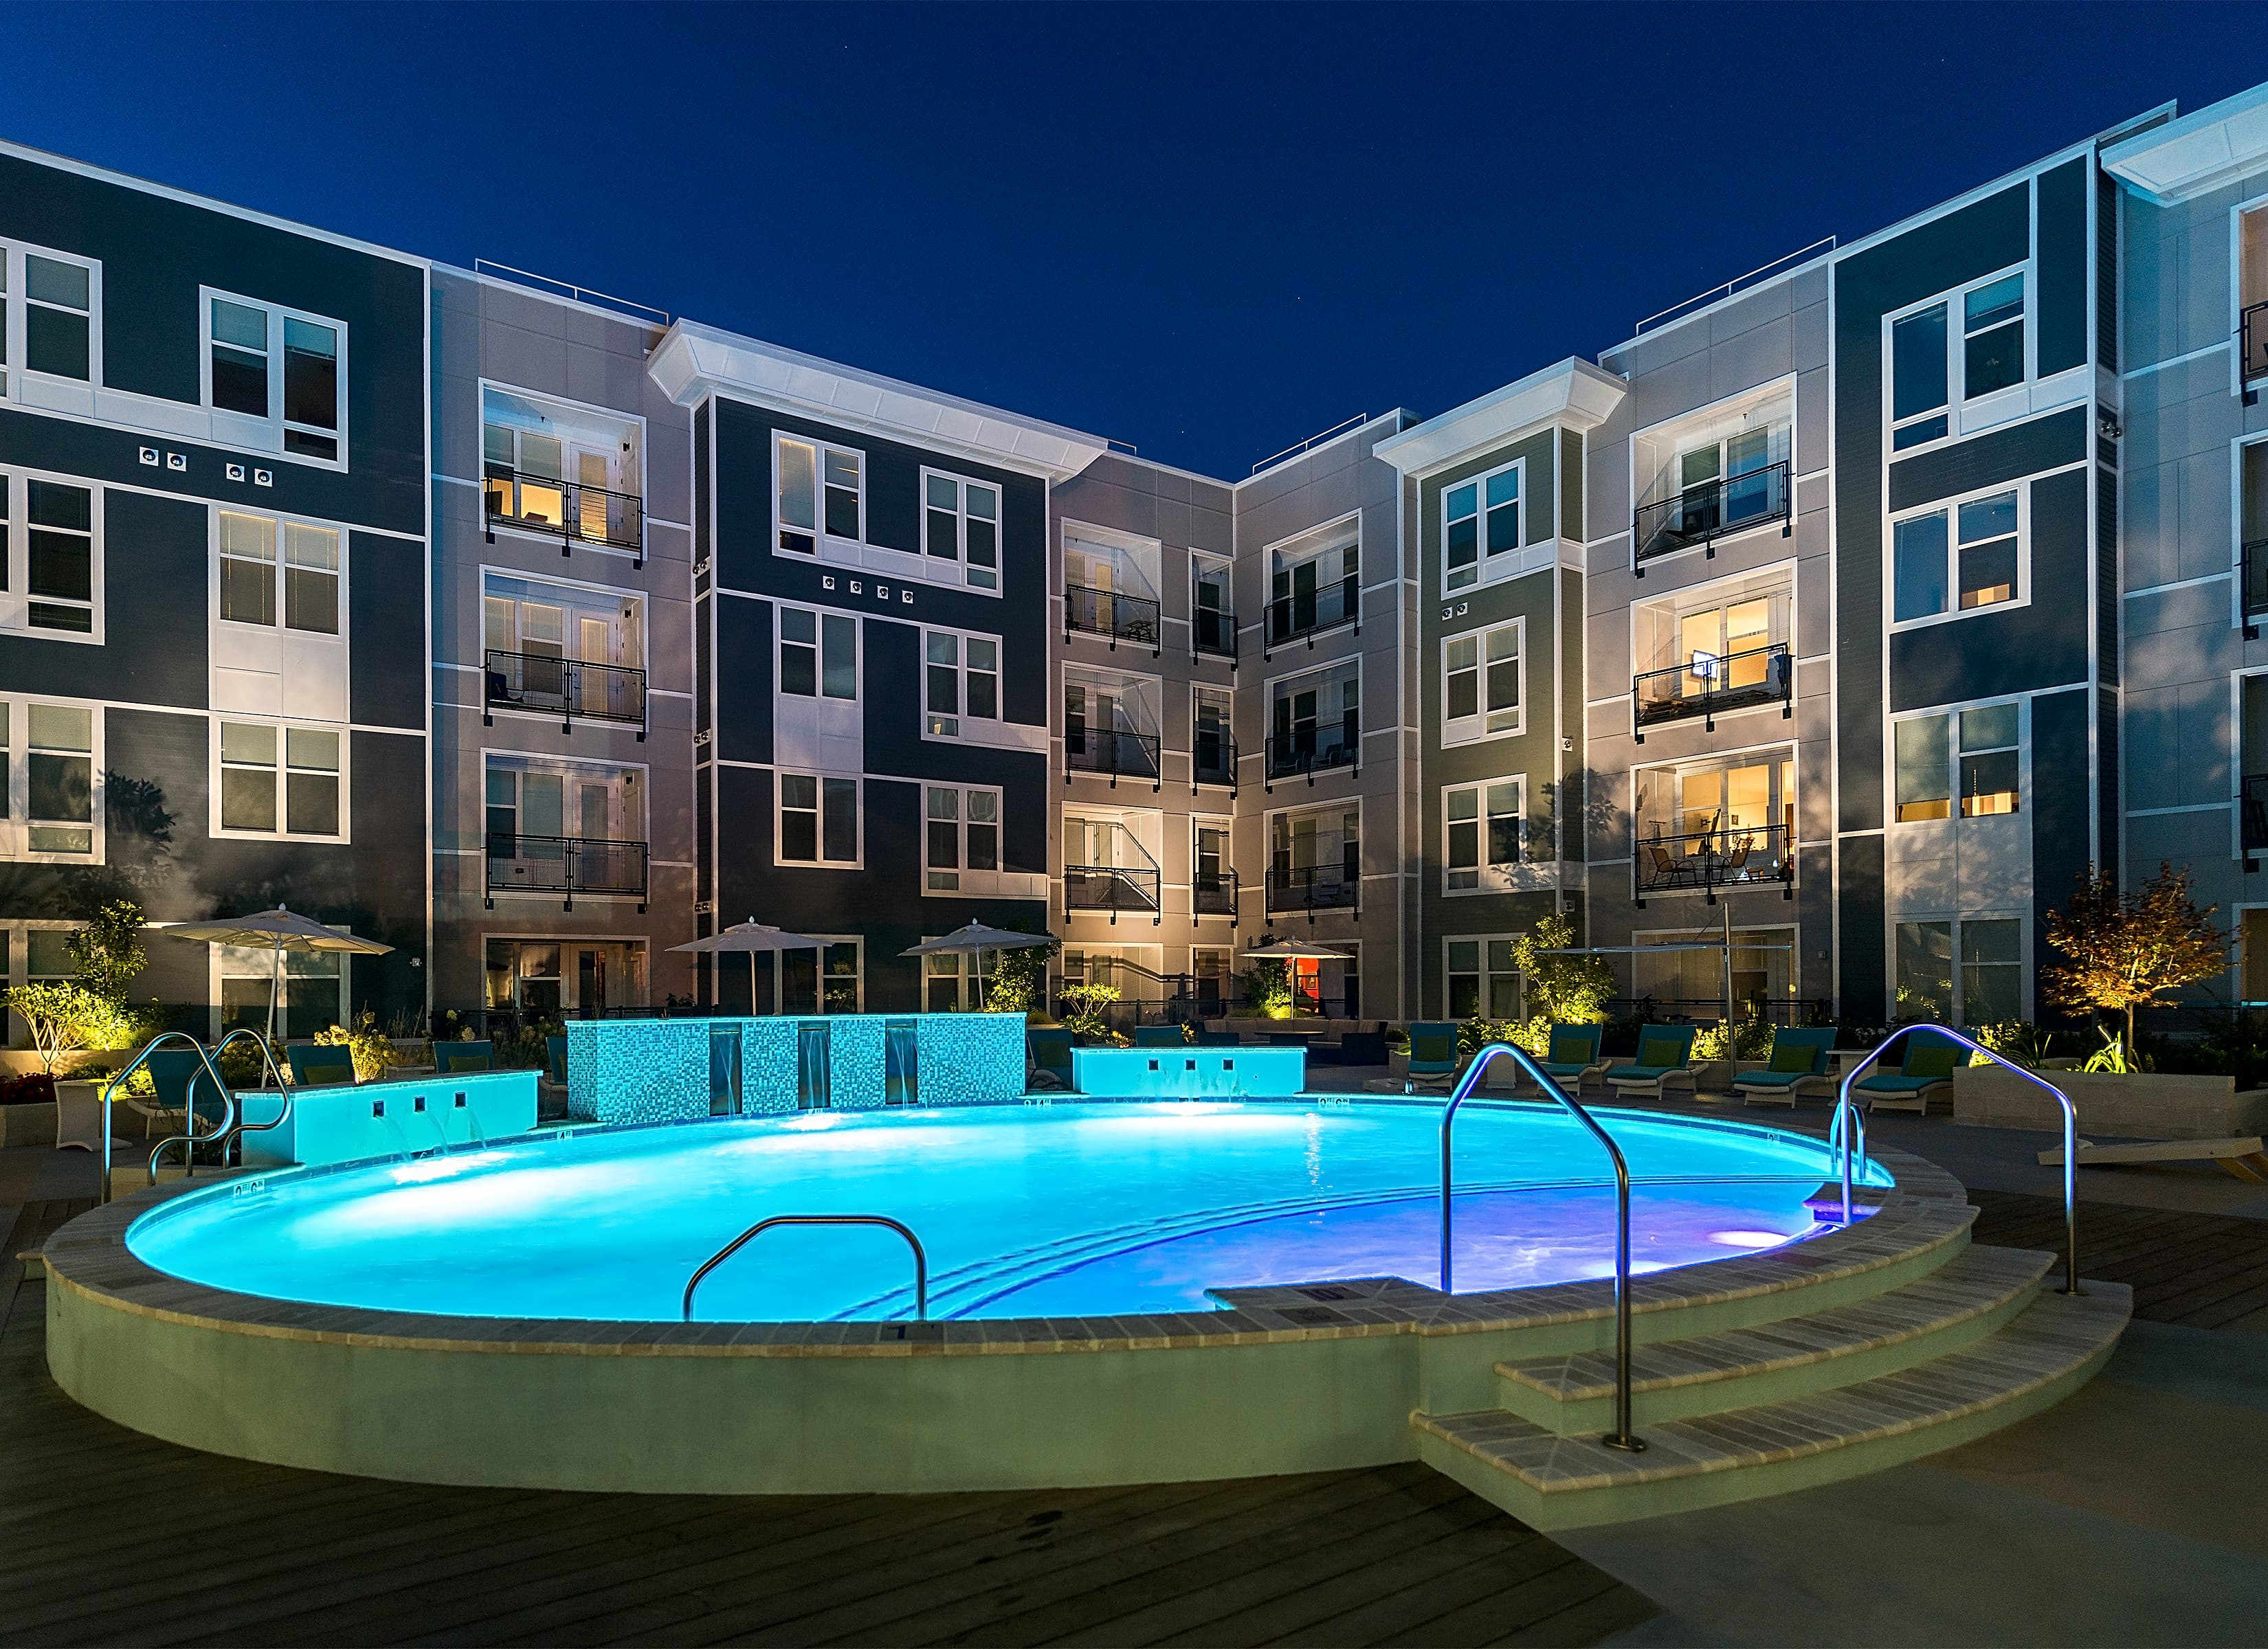 Towne Square Apartments Virginia Beach